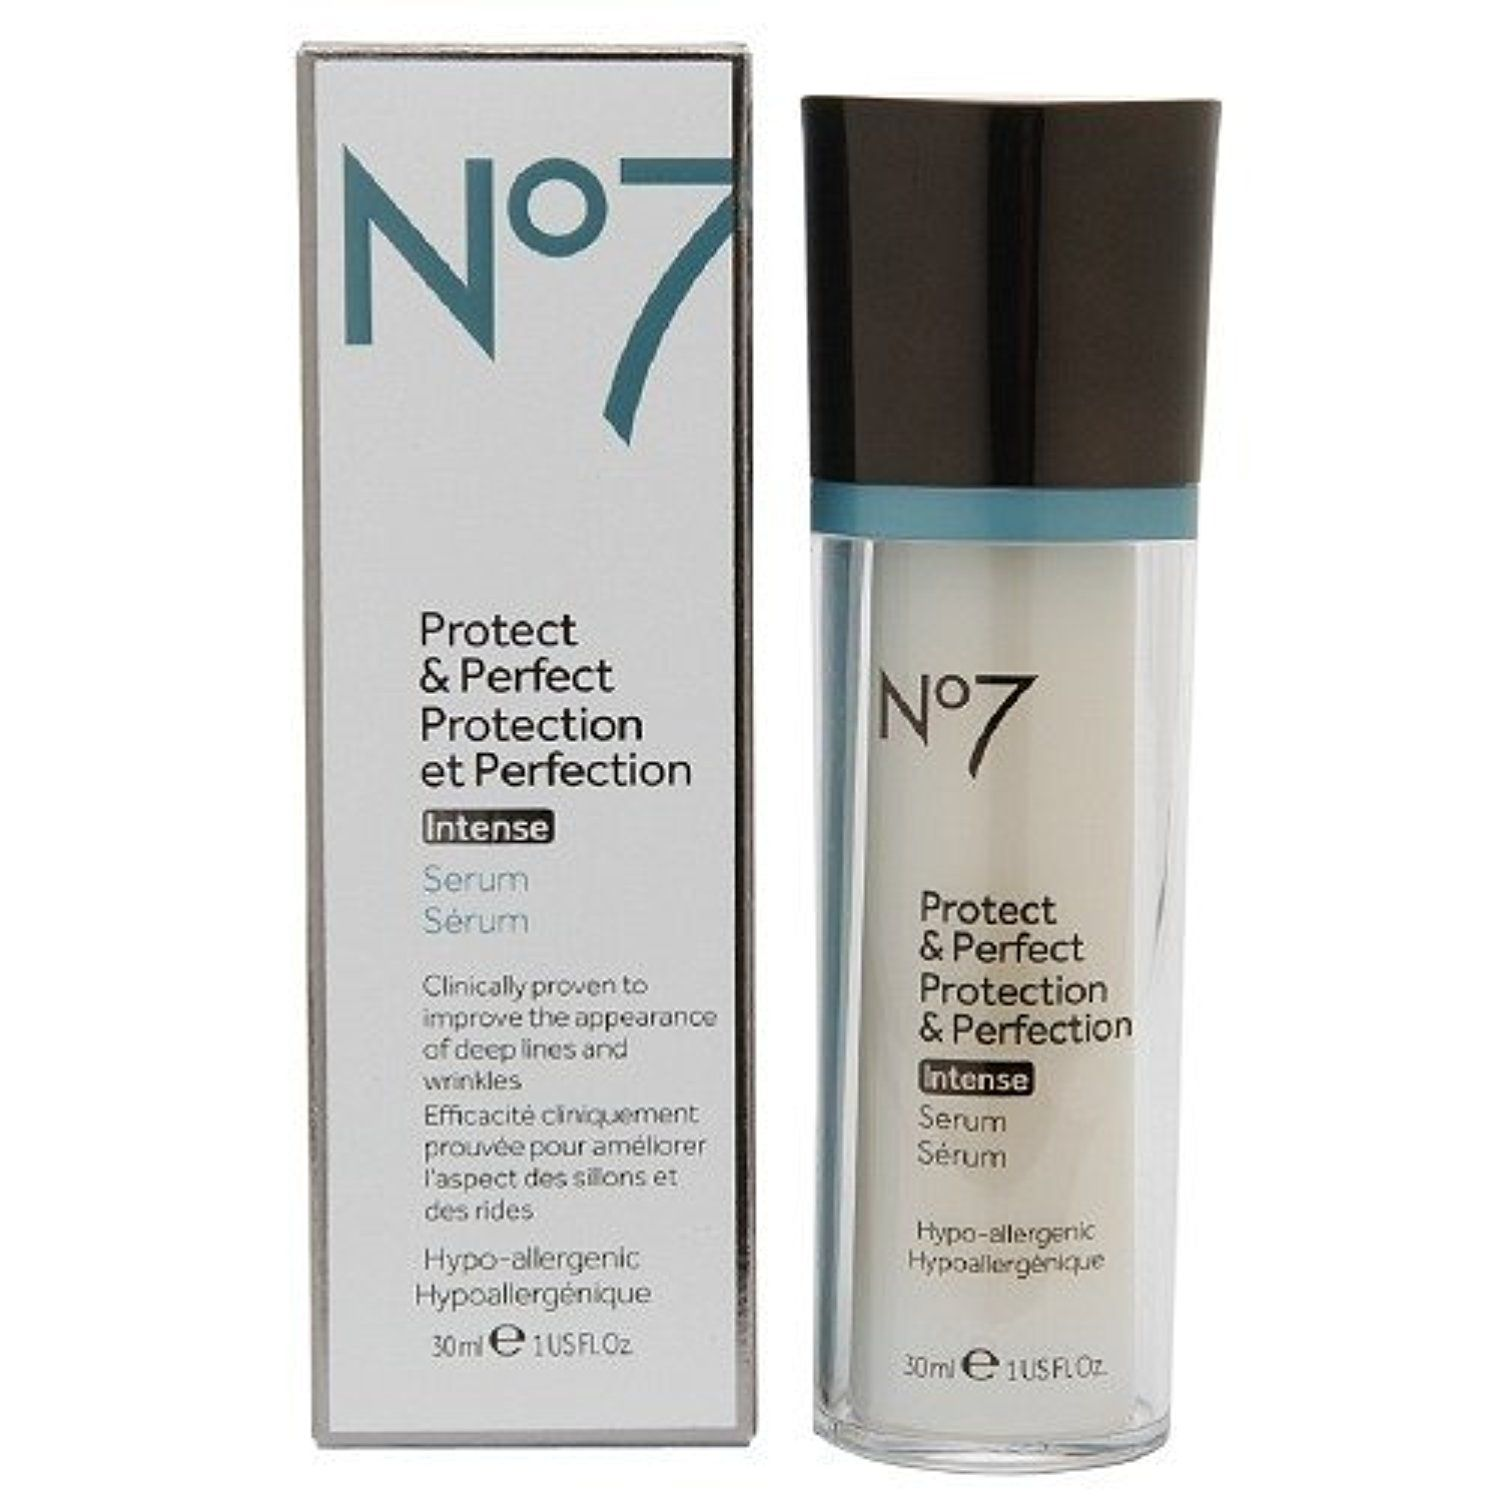 Boots No7 Protect & Perfect Protection & Perfection Intense Serum 1 fl oz (30 ml) by Boots -- Awesome products selected by Anna Churchill